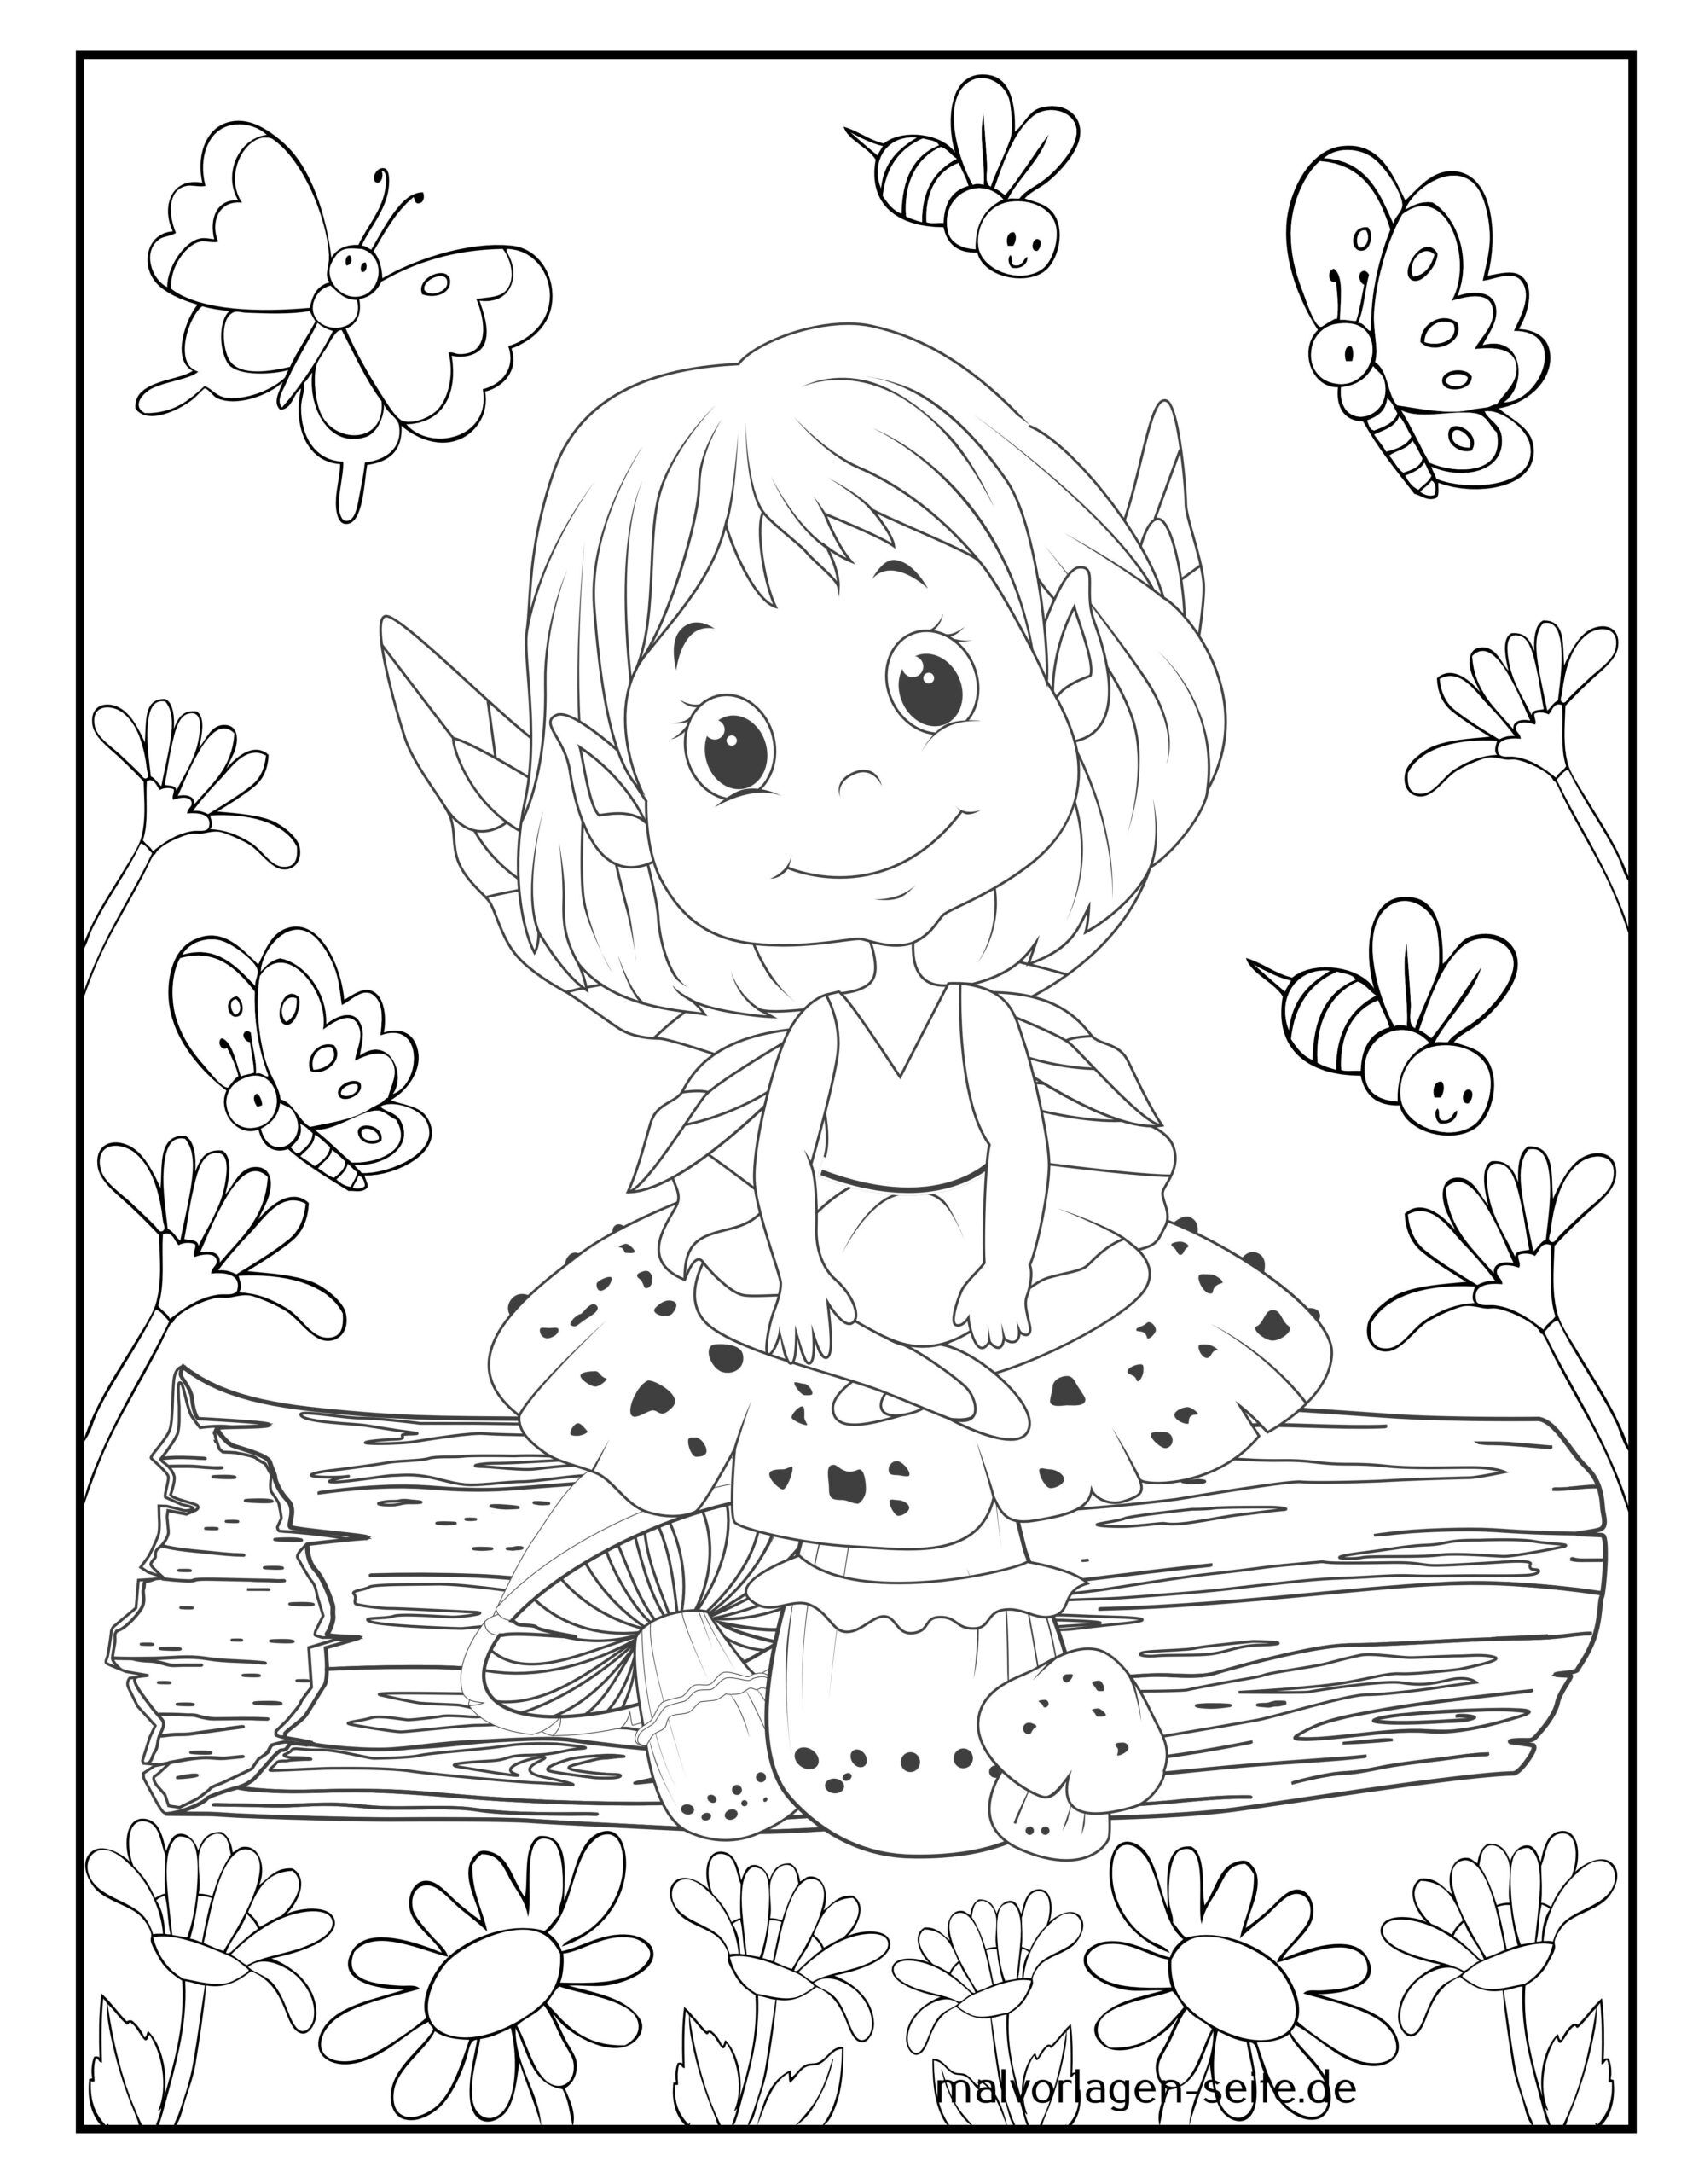 Coloring page fairy for coloring for children